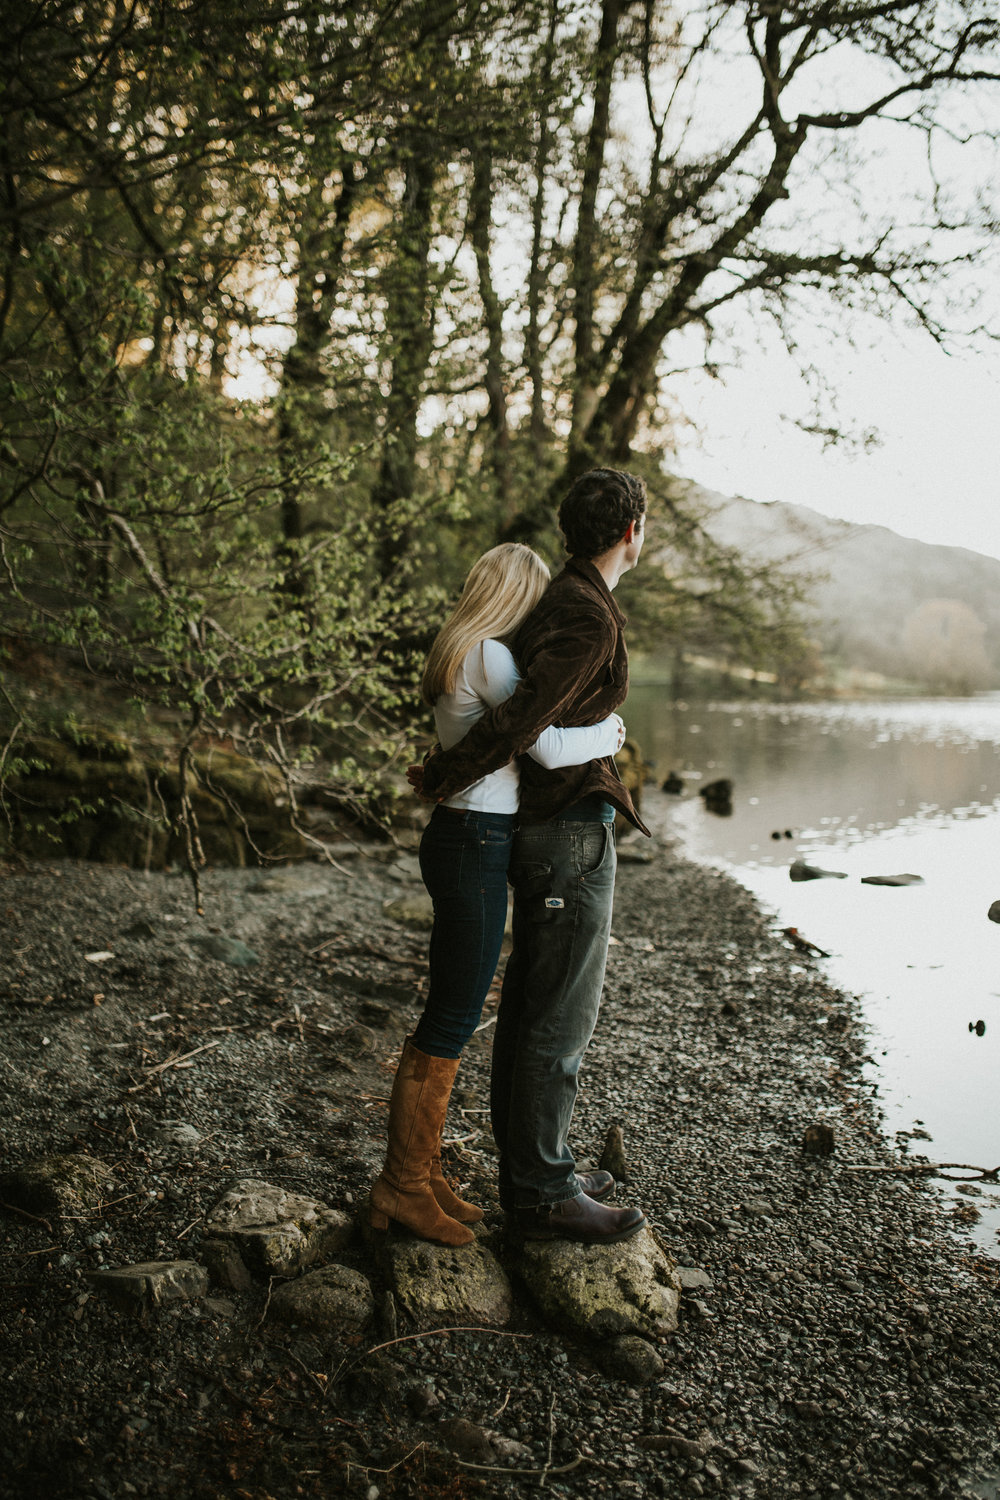 Claire-Clive-Engagement-Shoot-Lake-District-Darina-Stoda-Photography-68.jpg